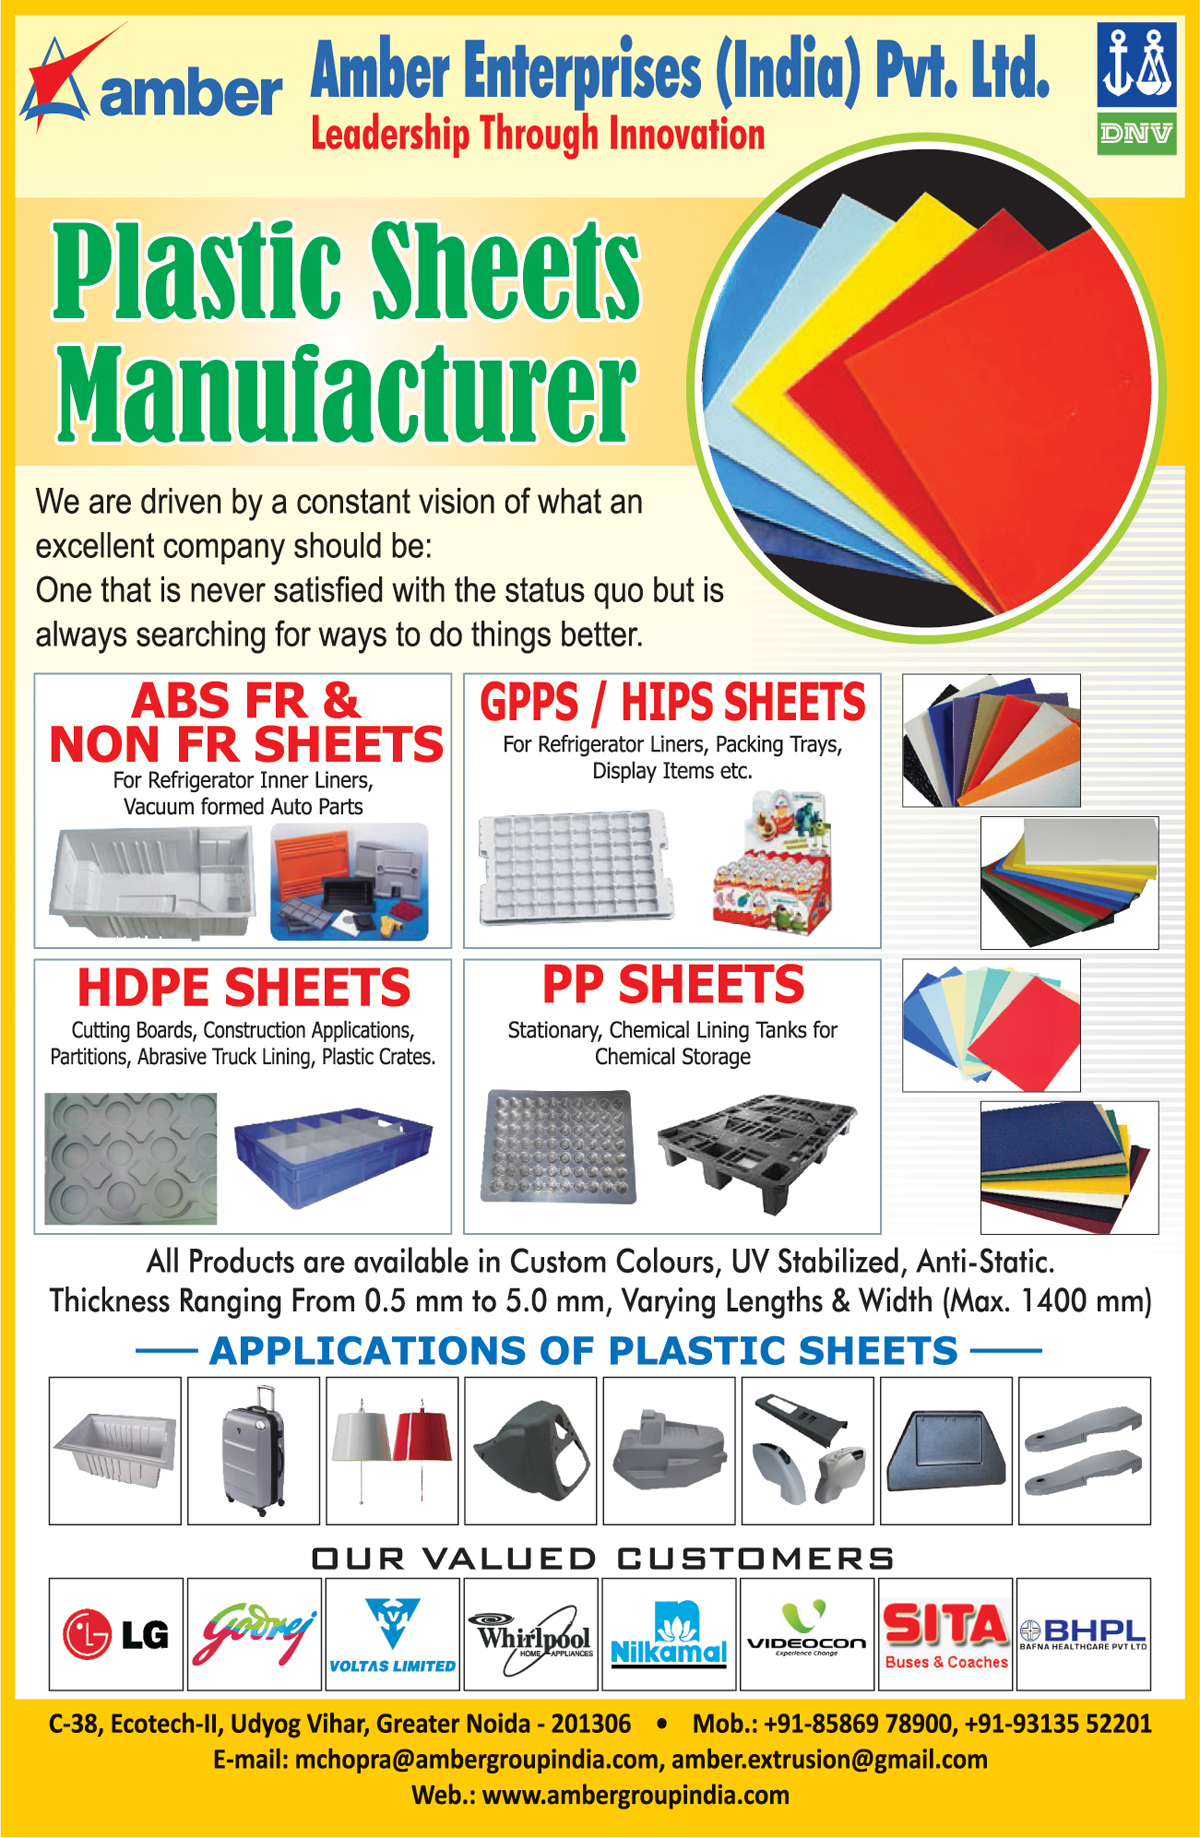 Plastic Sheets, GPPS Sheets, HIPS Sheets, ABS FR Sheets, ABS Non FR Sheets, PP Sheets, HDPE Sheets